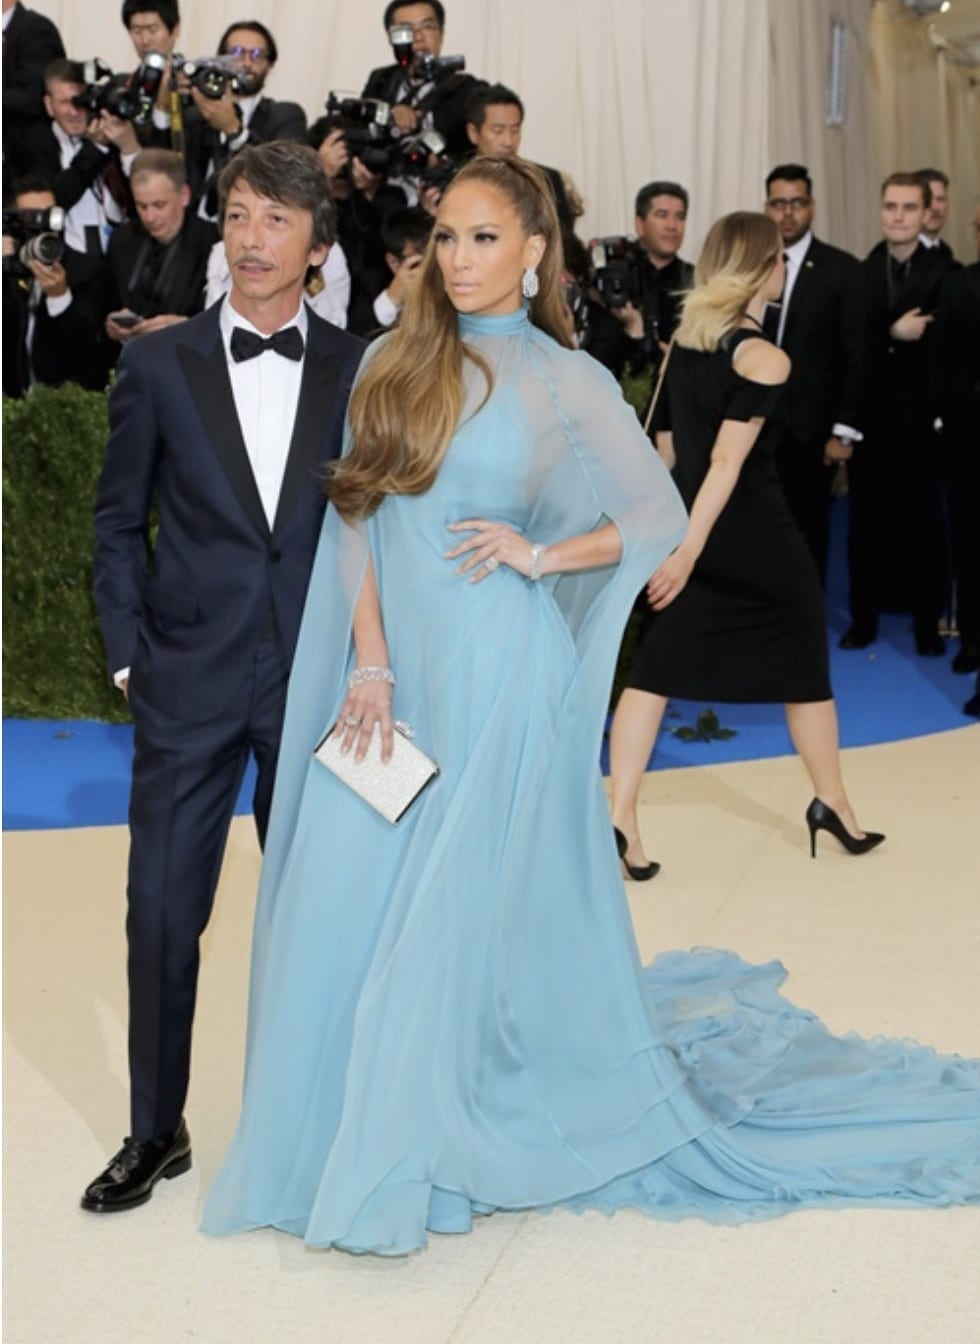 Met Gala 2017, bella hadid met gala 2017, theladycracy.it, elisa bellino, fashion blog, fashion blog 2017, fashion blogger 2017, look da red carpet, come si vestono le star sui red carpet, jennifer lopez met gala 2017